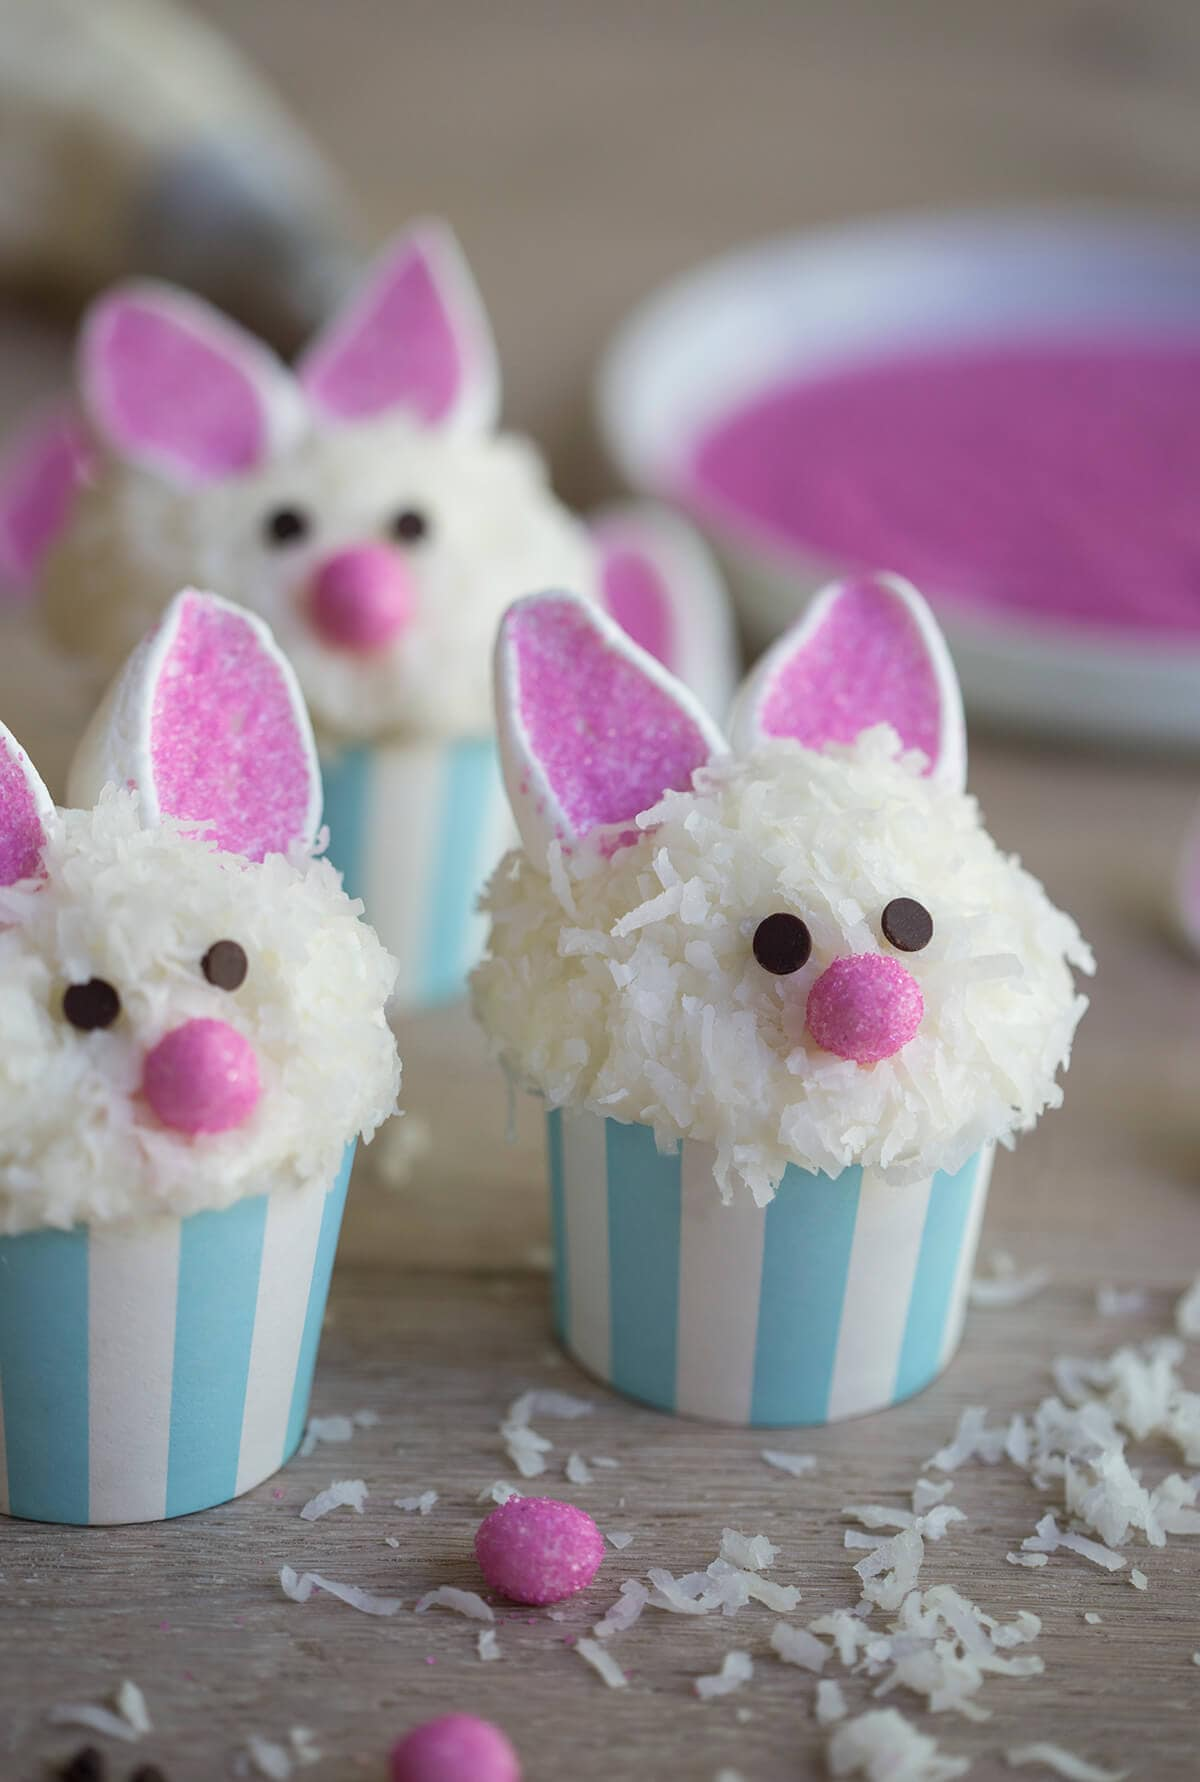 Easter and Spring Roundup of Cakes, Tutorials, and Ideas! Bunny cupcakes from The Preppy Kitchen!